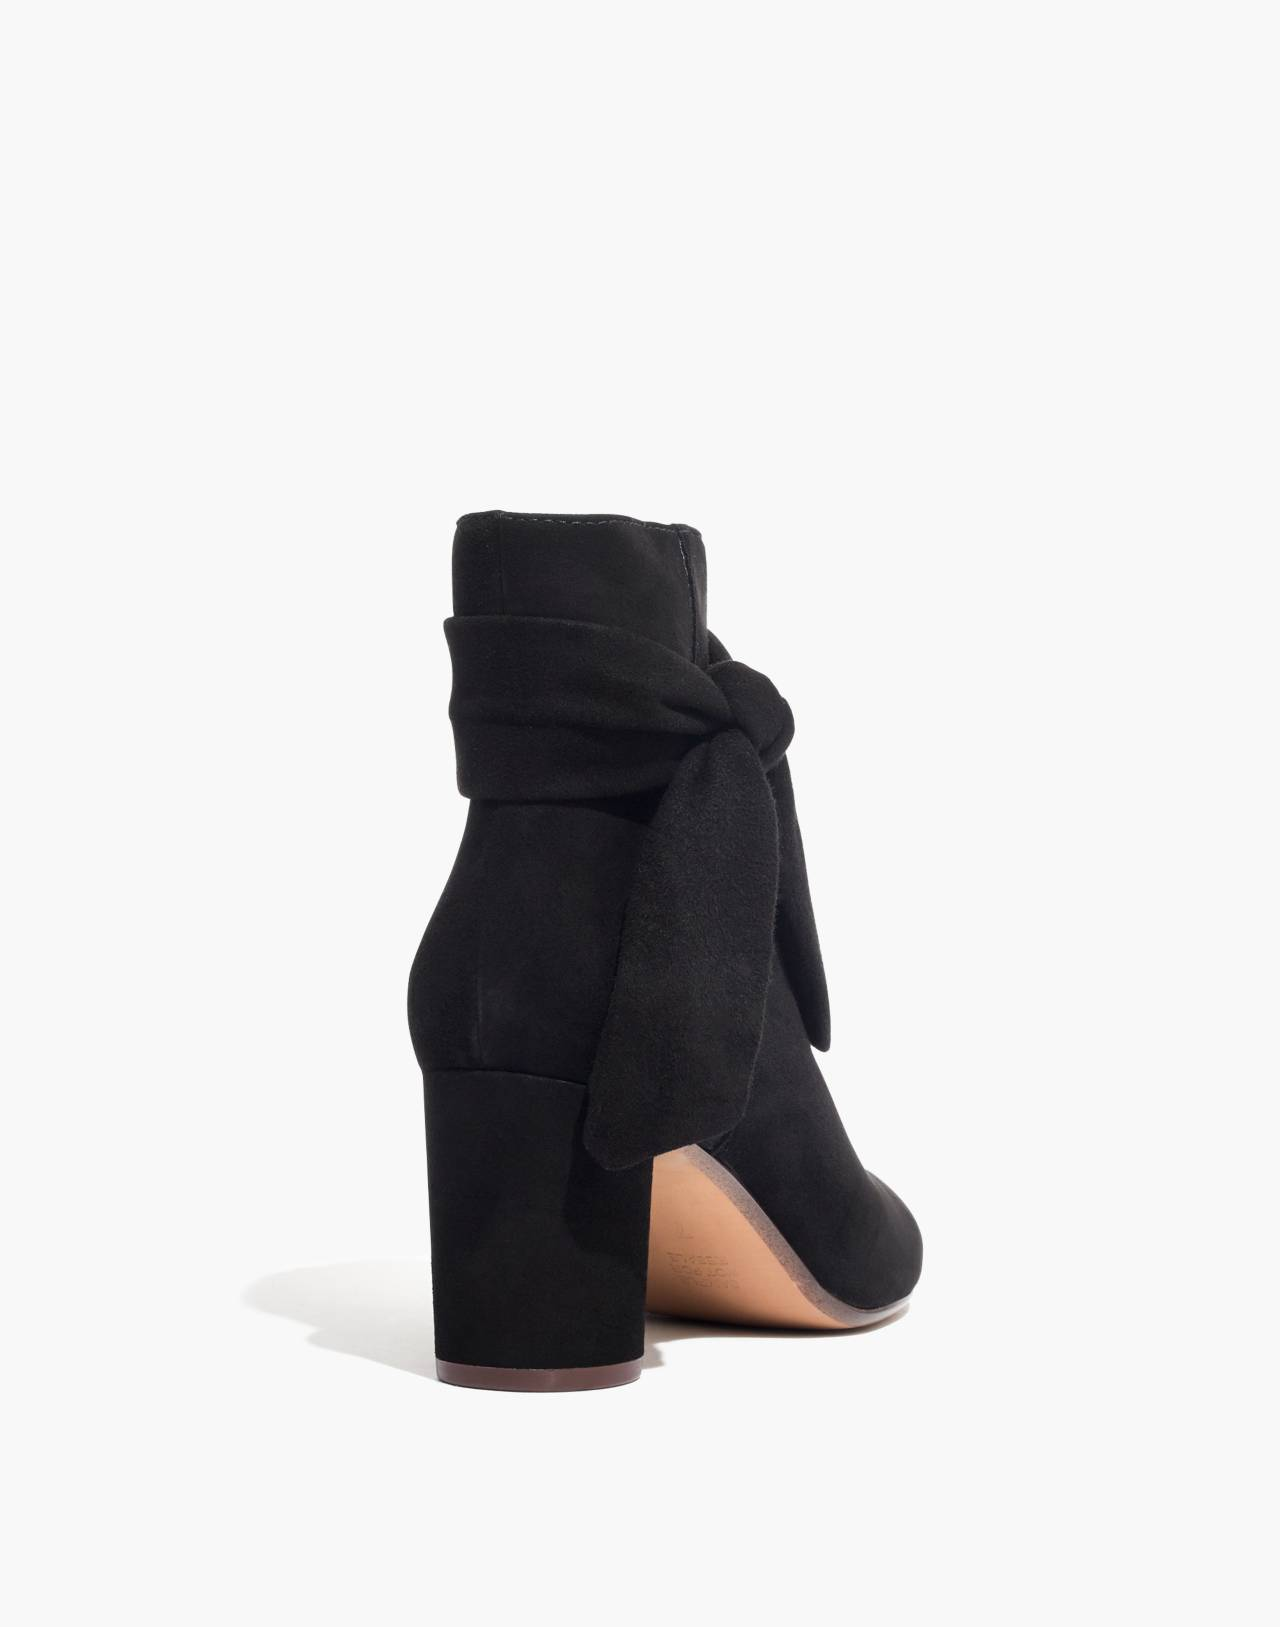 The Esme Bow Boot in Suede in true black image 4